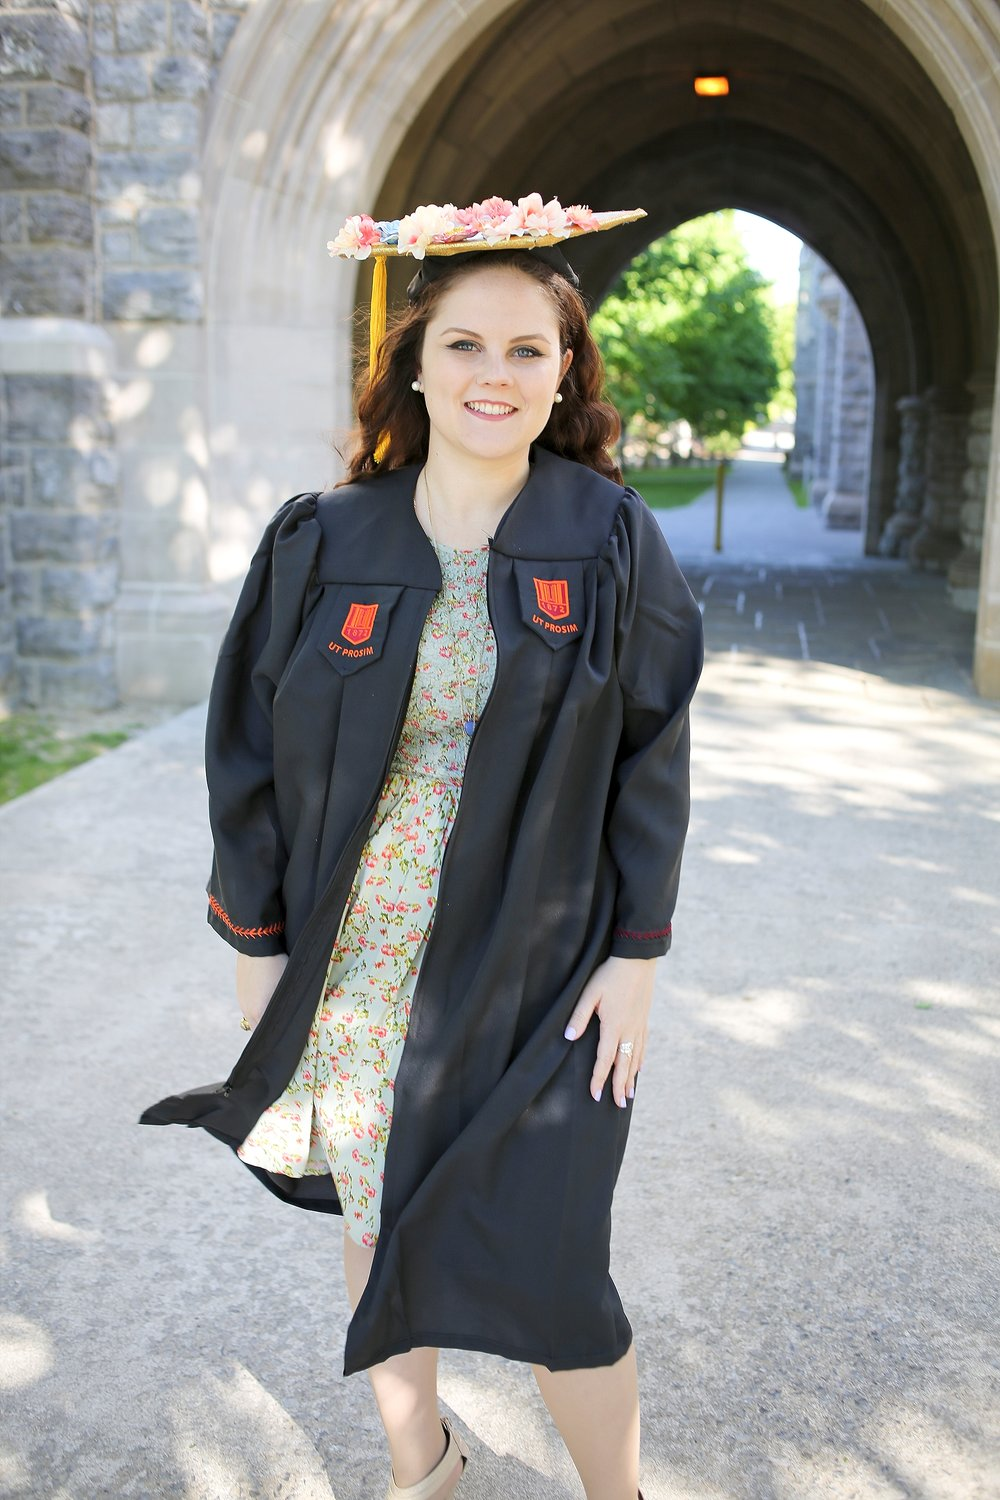 Rebecca | Virginia Tech Graduation Portrait Photographer, Holly Cromer